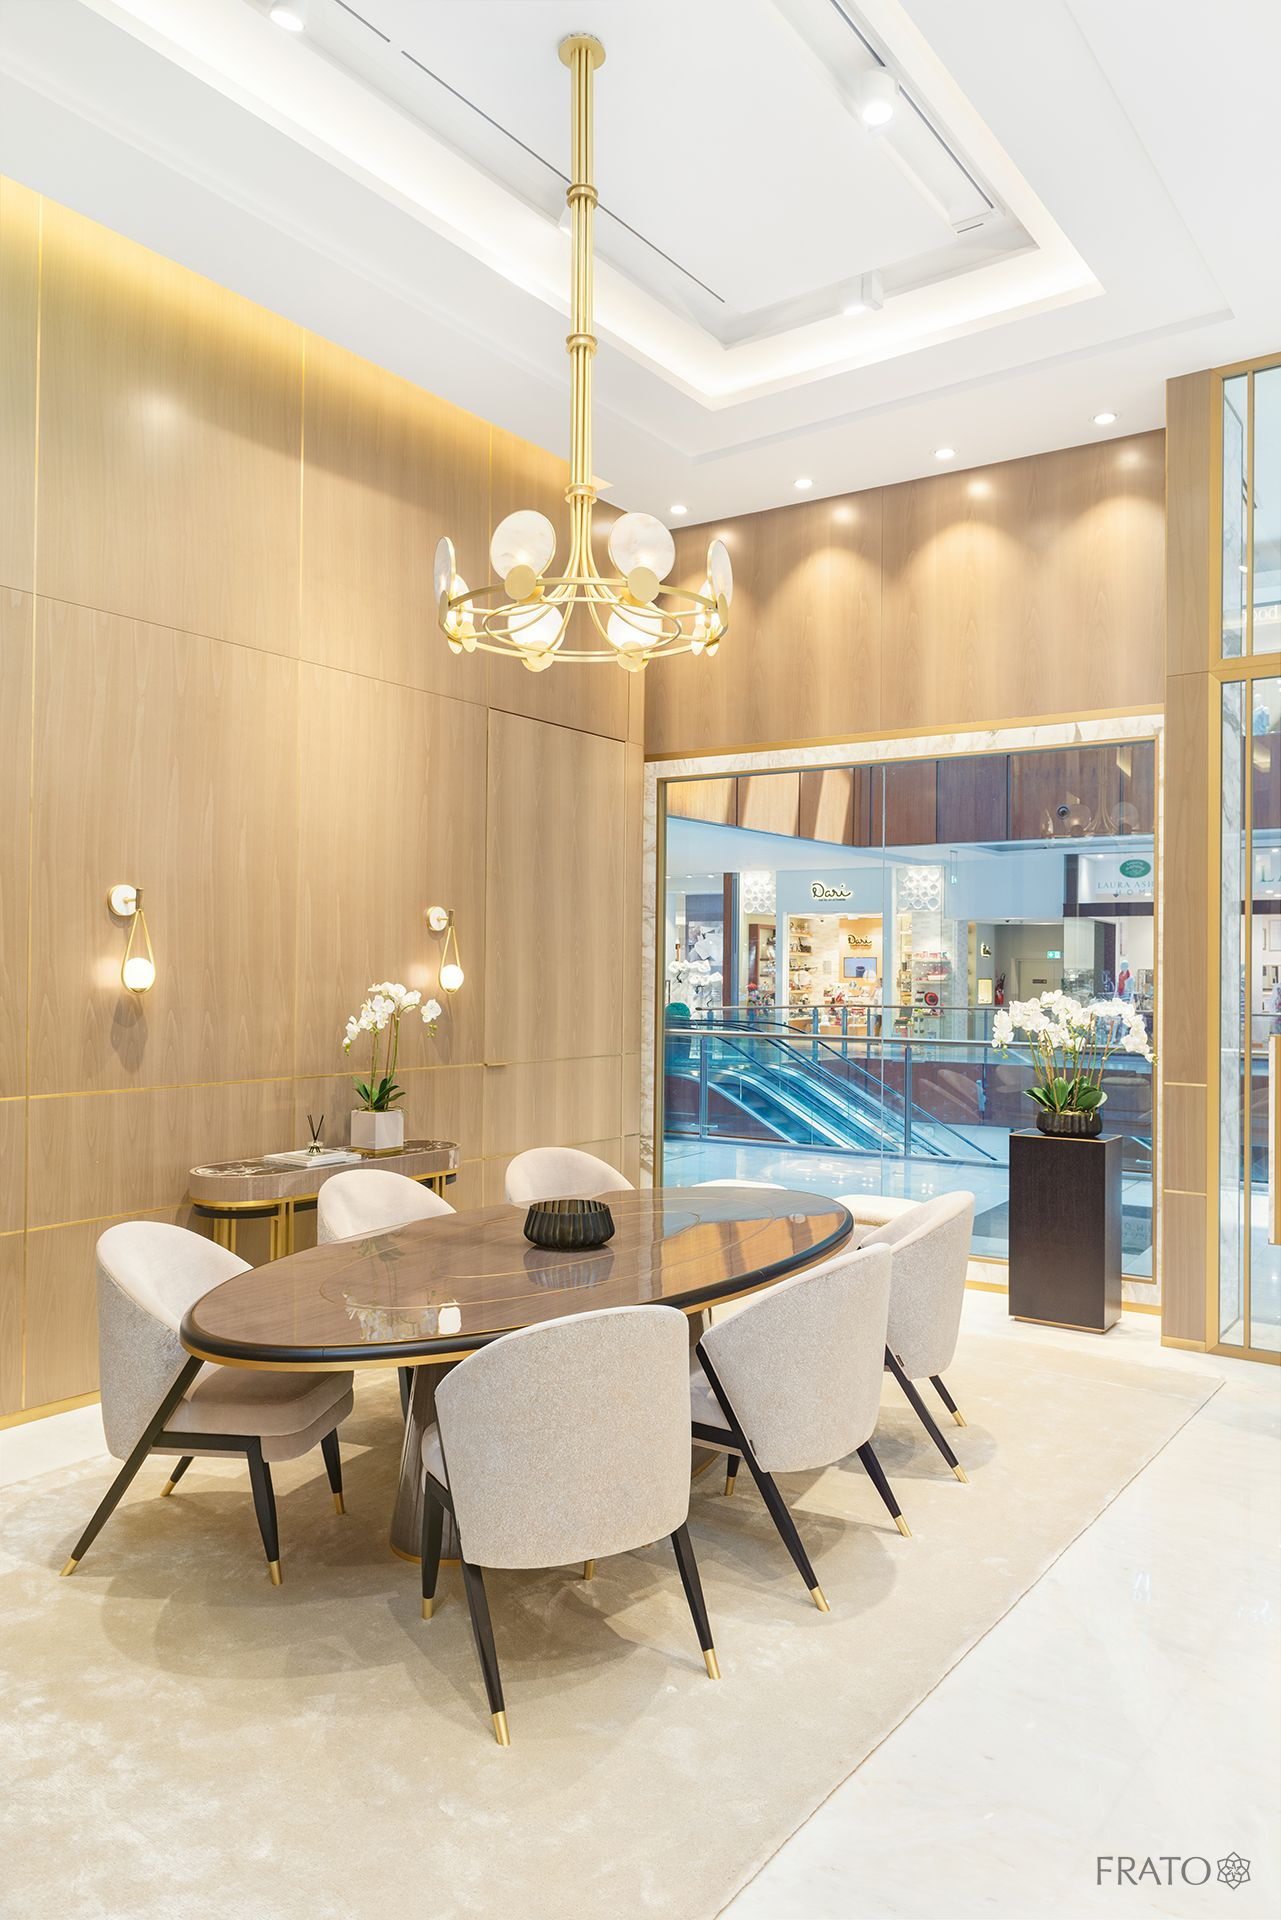 36 Charming Living Room Ideas: Welcome To Frato Interiors NEW FLAGSHIP STORE At The Dubai